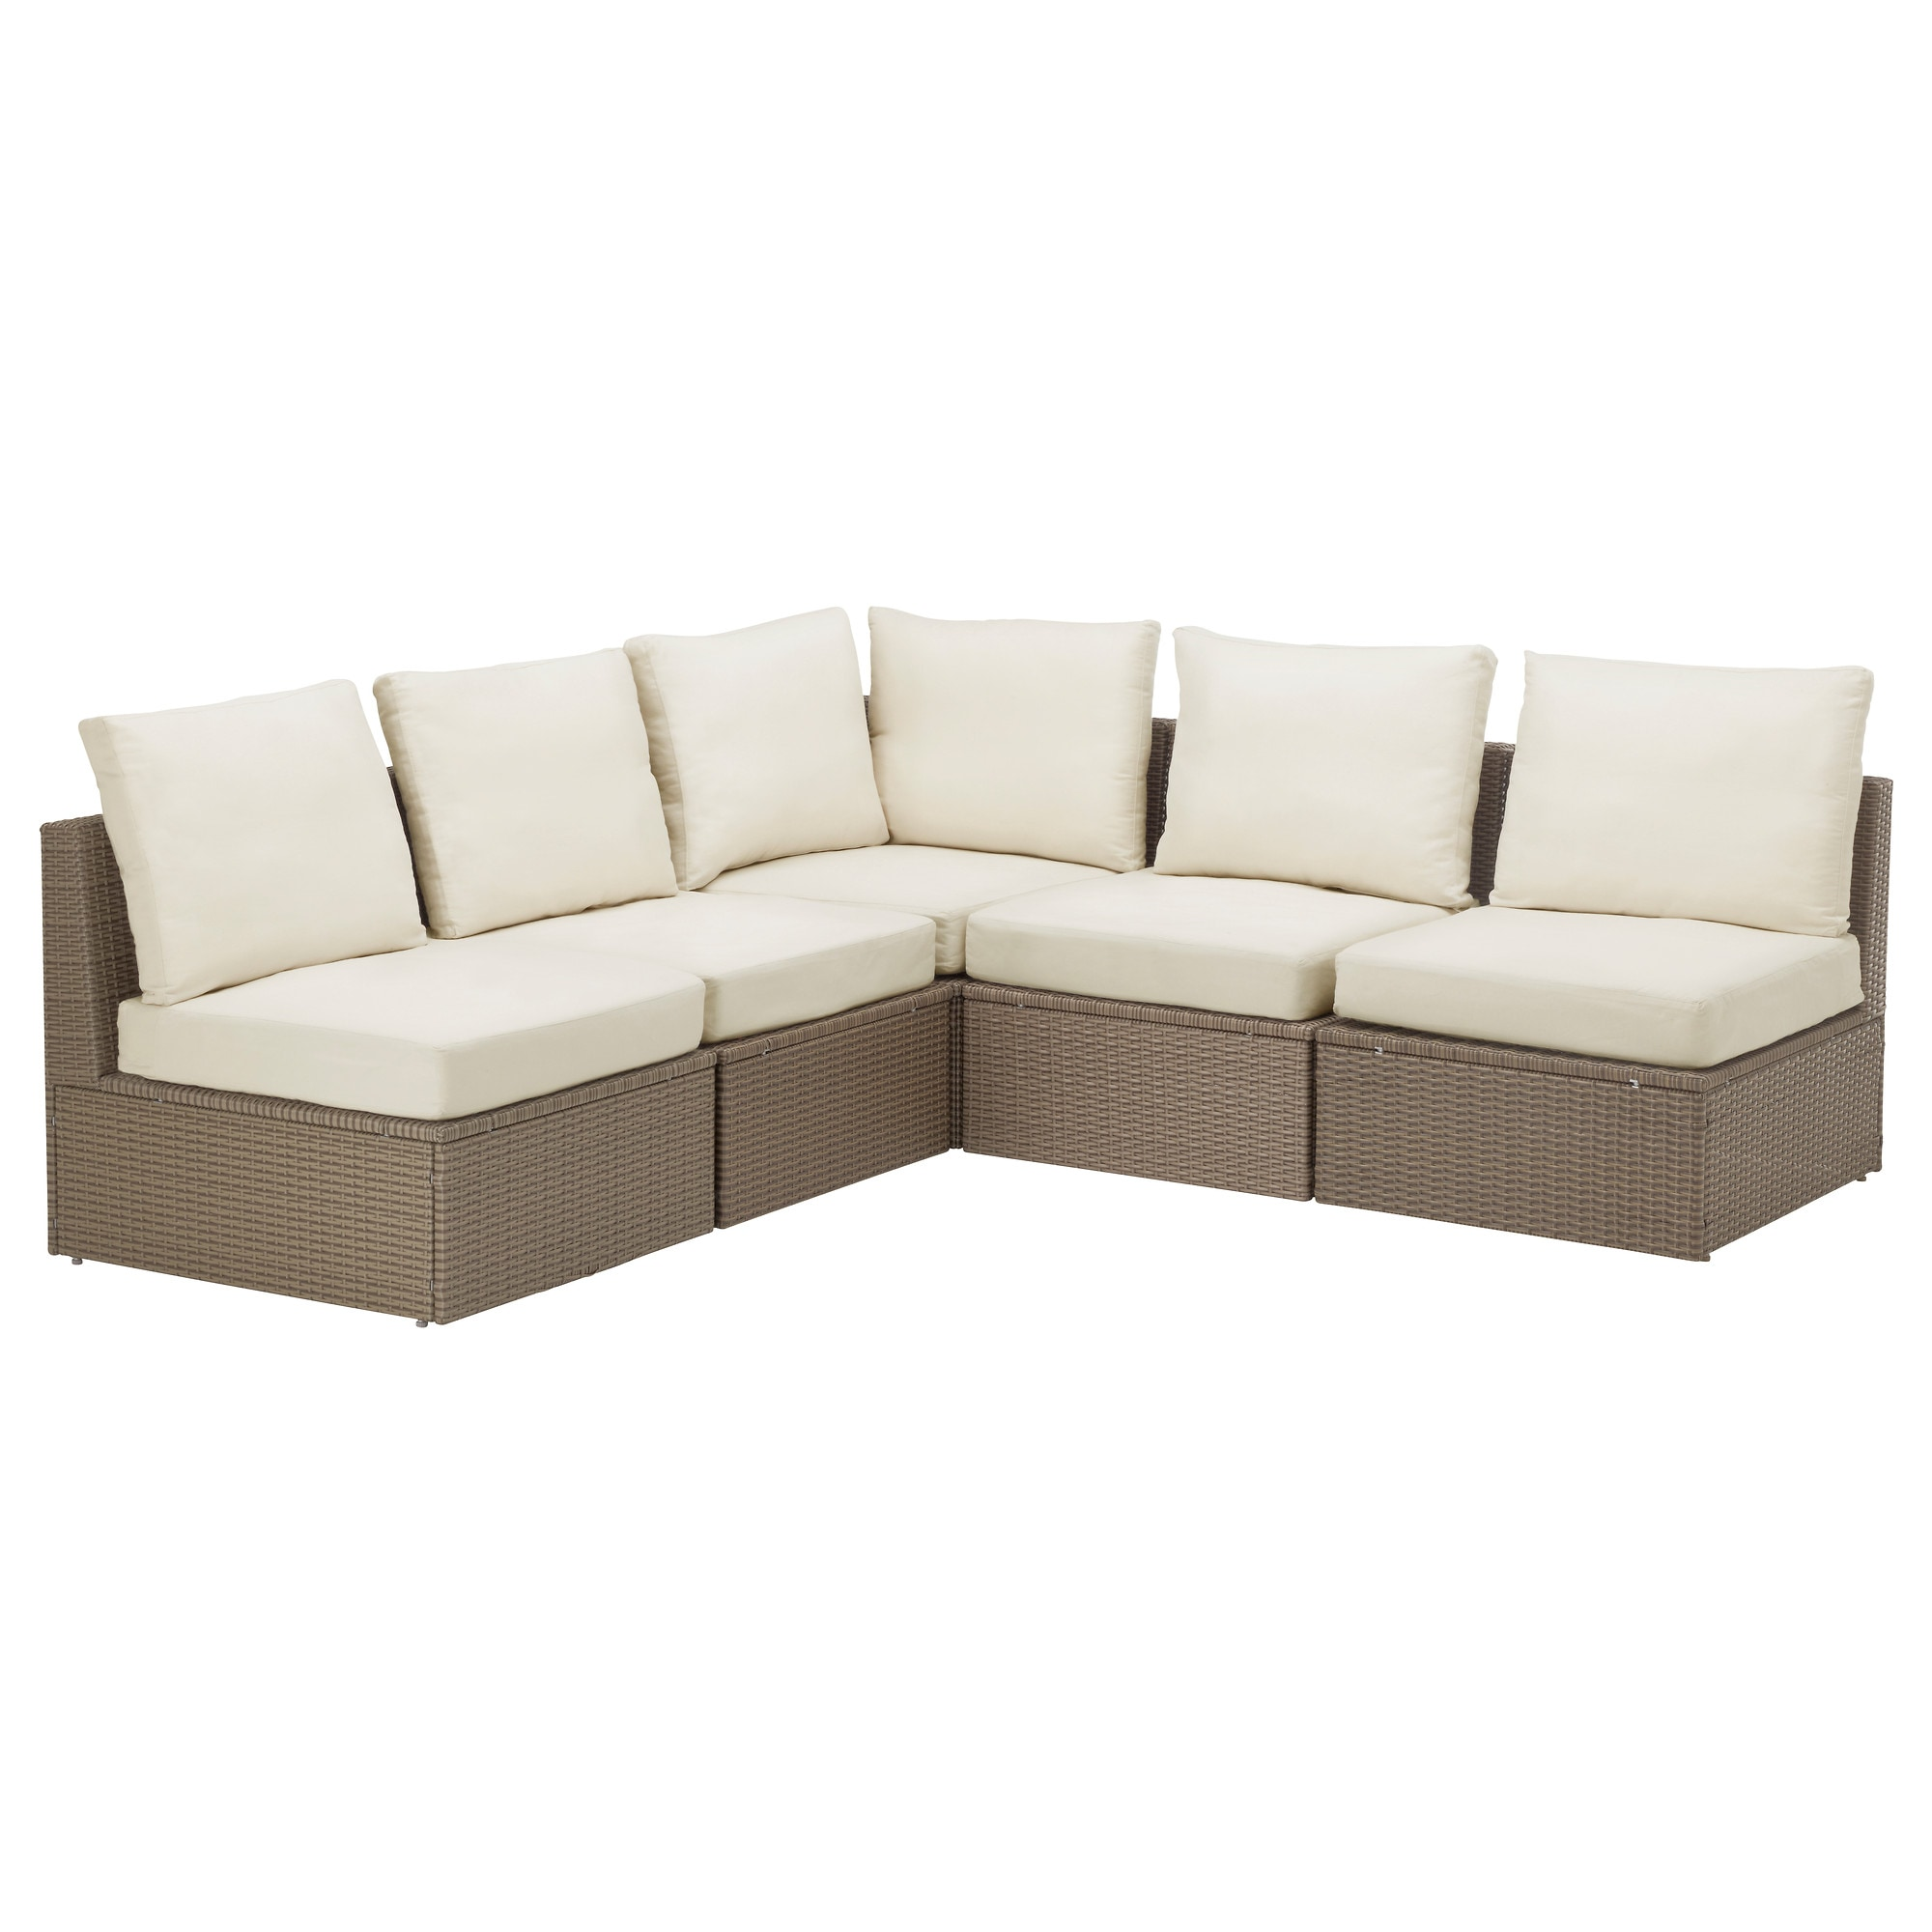 ARHOLMA 5seat sectional outdoor  IKEA